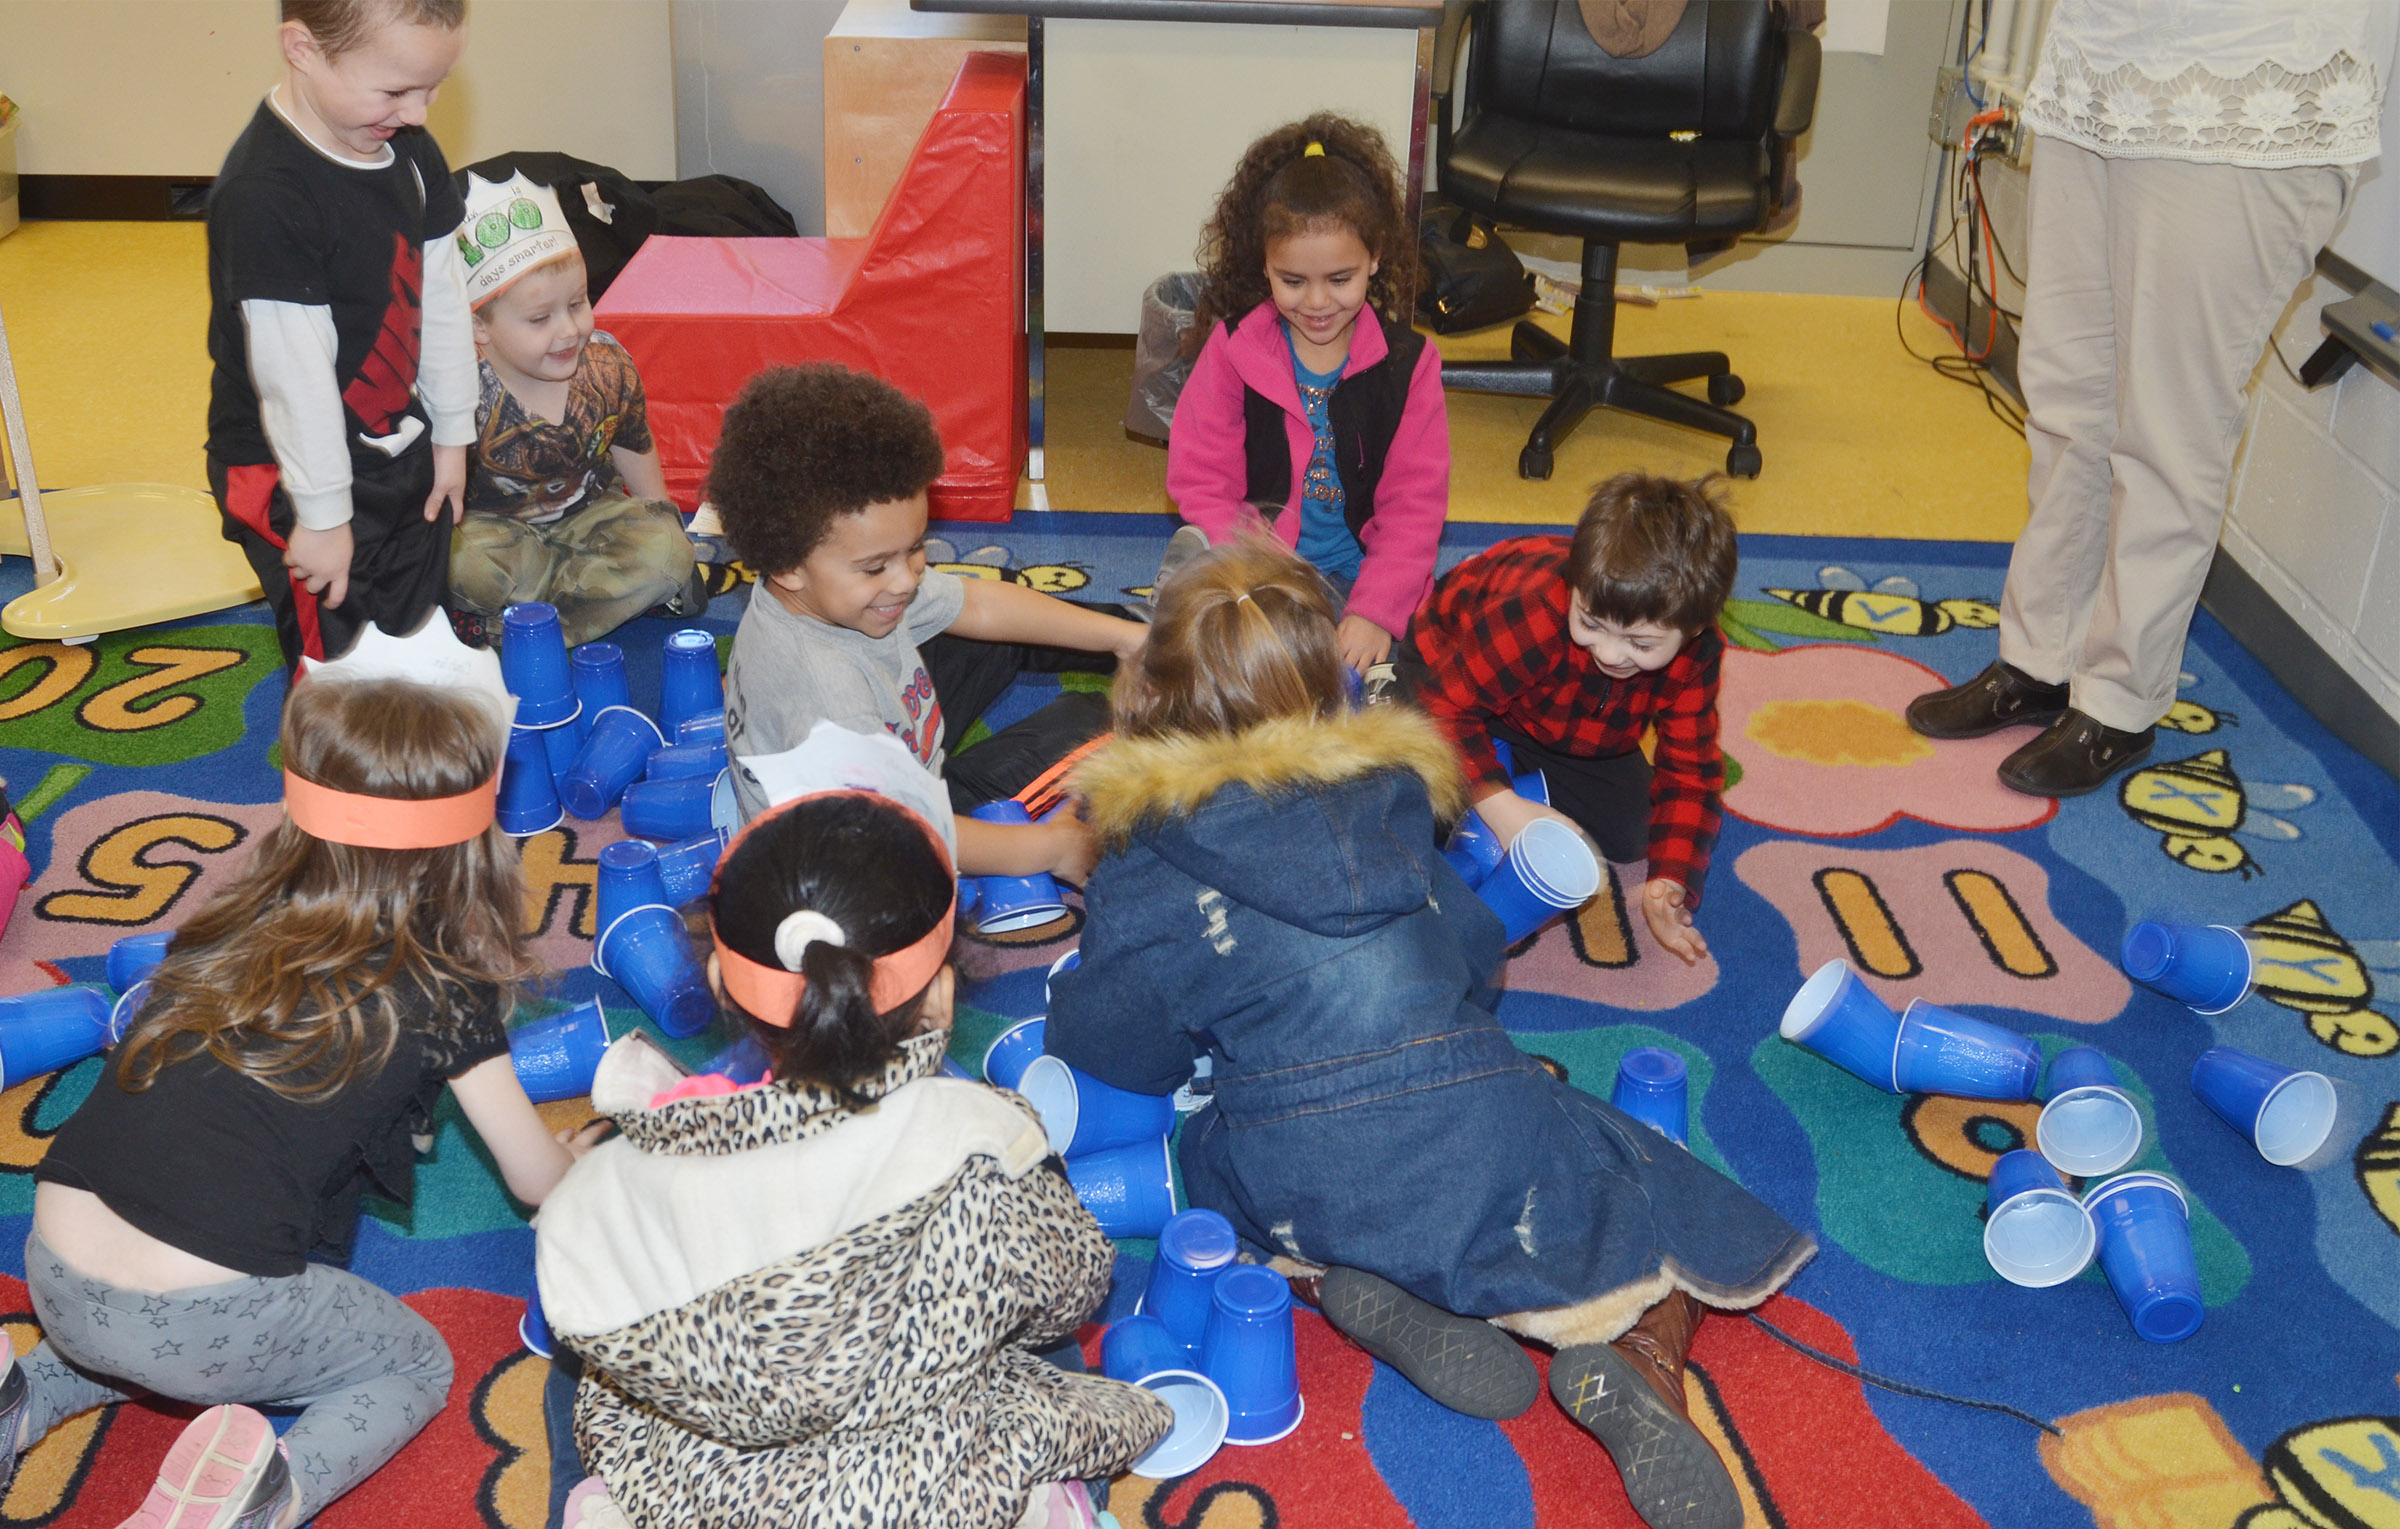 CES preschool students knock all the cups down after they stacked 100 of them in celebration of the 100th day of school.